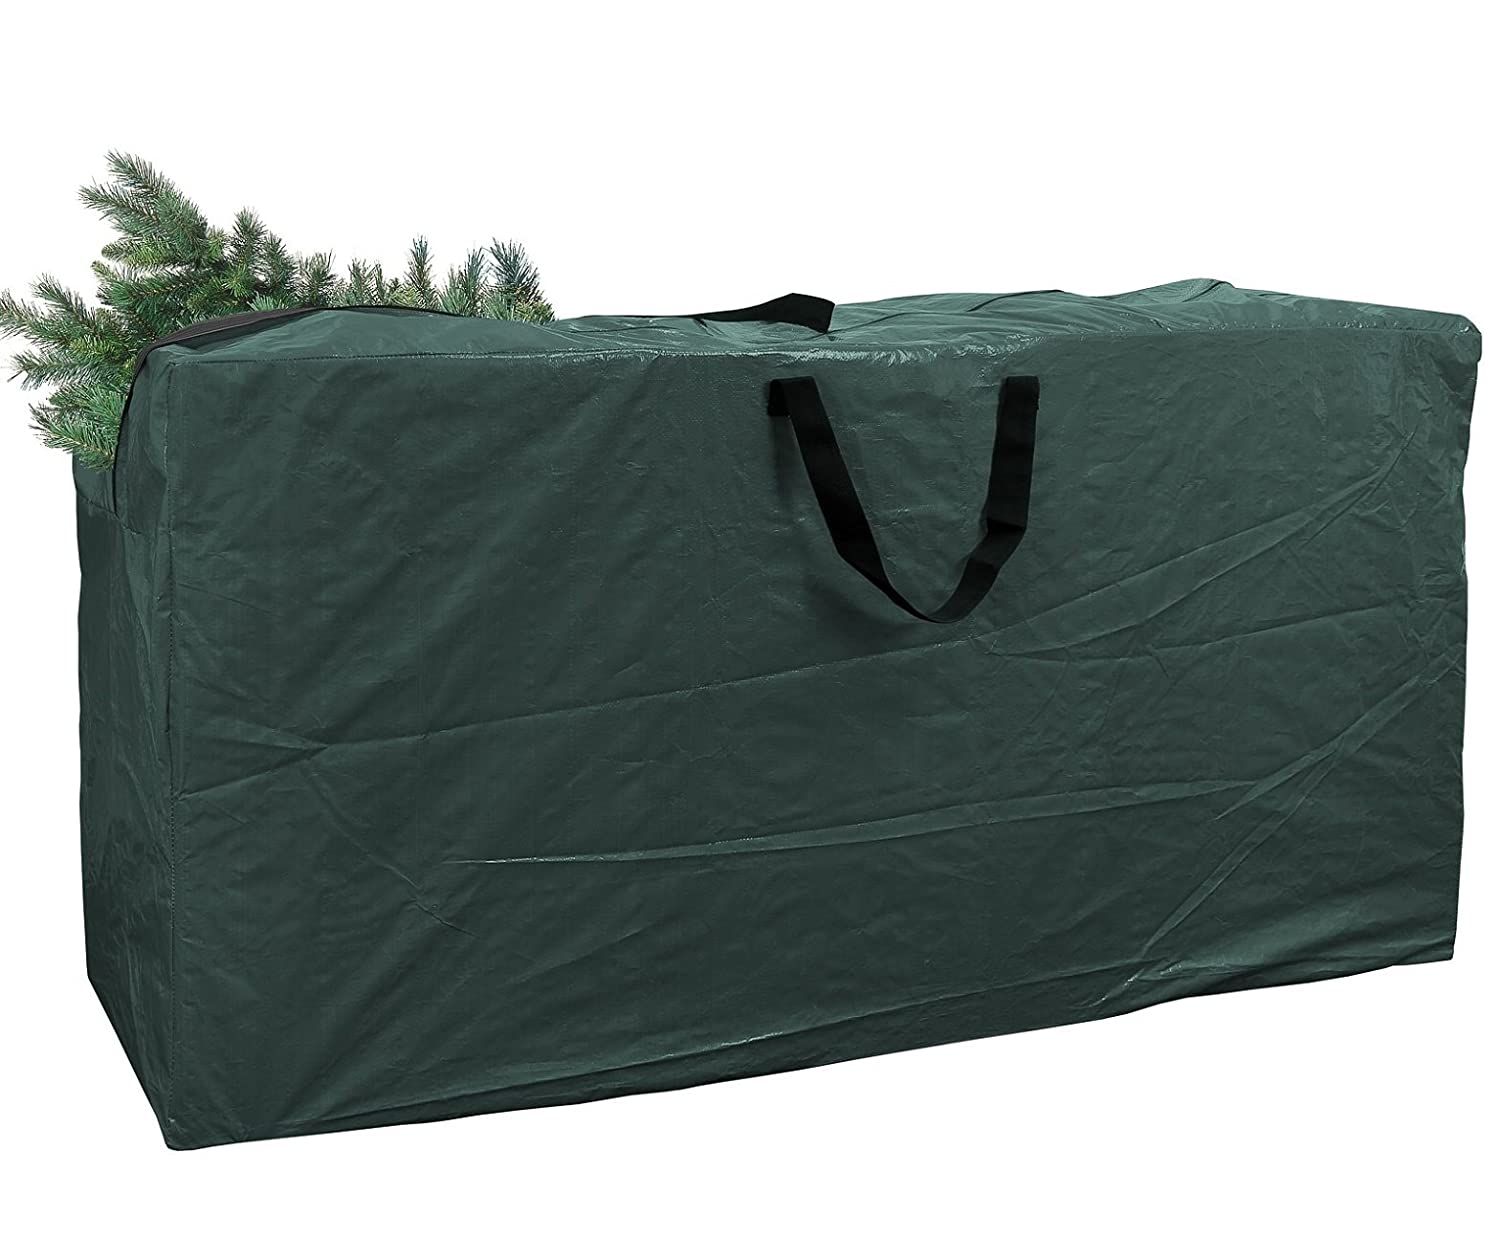 Greenco Extra Large Christmas Tree Storage Bag For 9 Foot Tree, Dark Green, Dimensions 65 x 15 x 30 Inches GRC0258